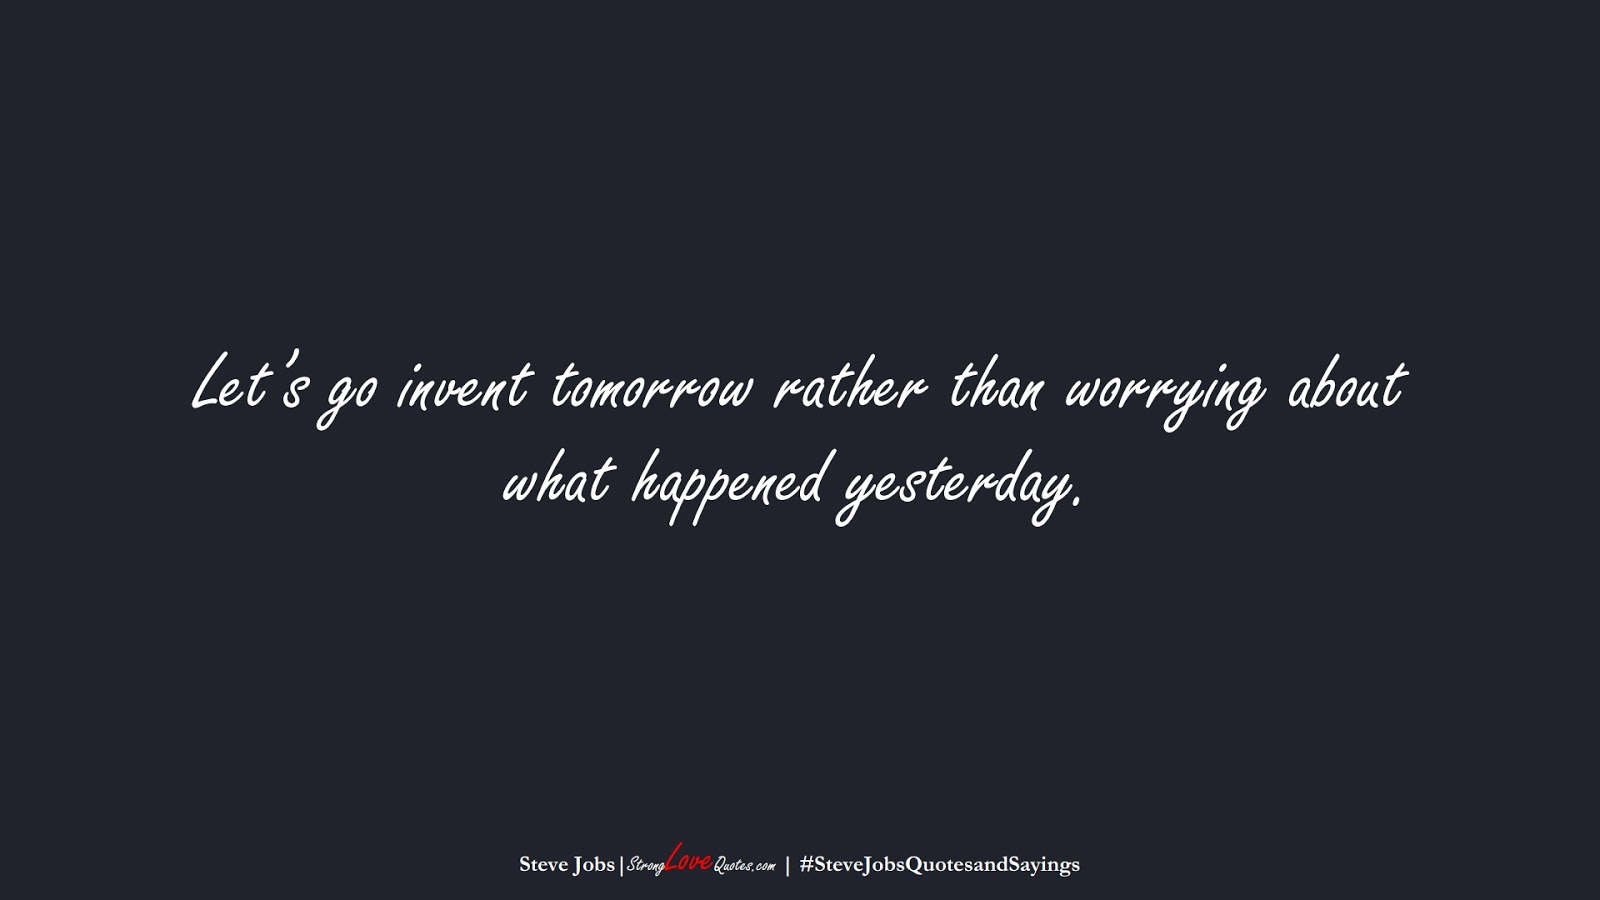 Let's go invent tomorrow rather than worrying about what happened yesterday. (Steve Jobs);  #SteveJobsQuotesandSayings